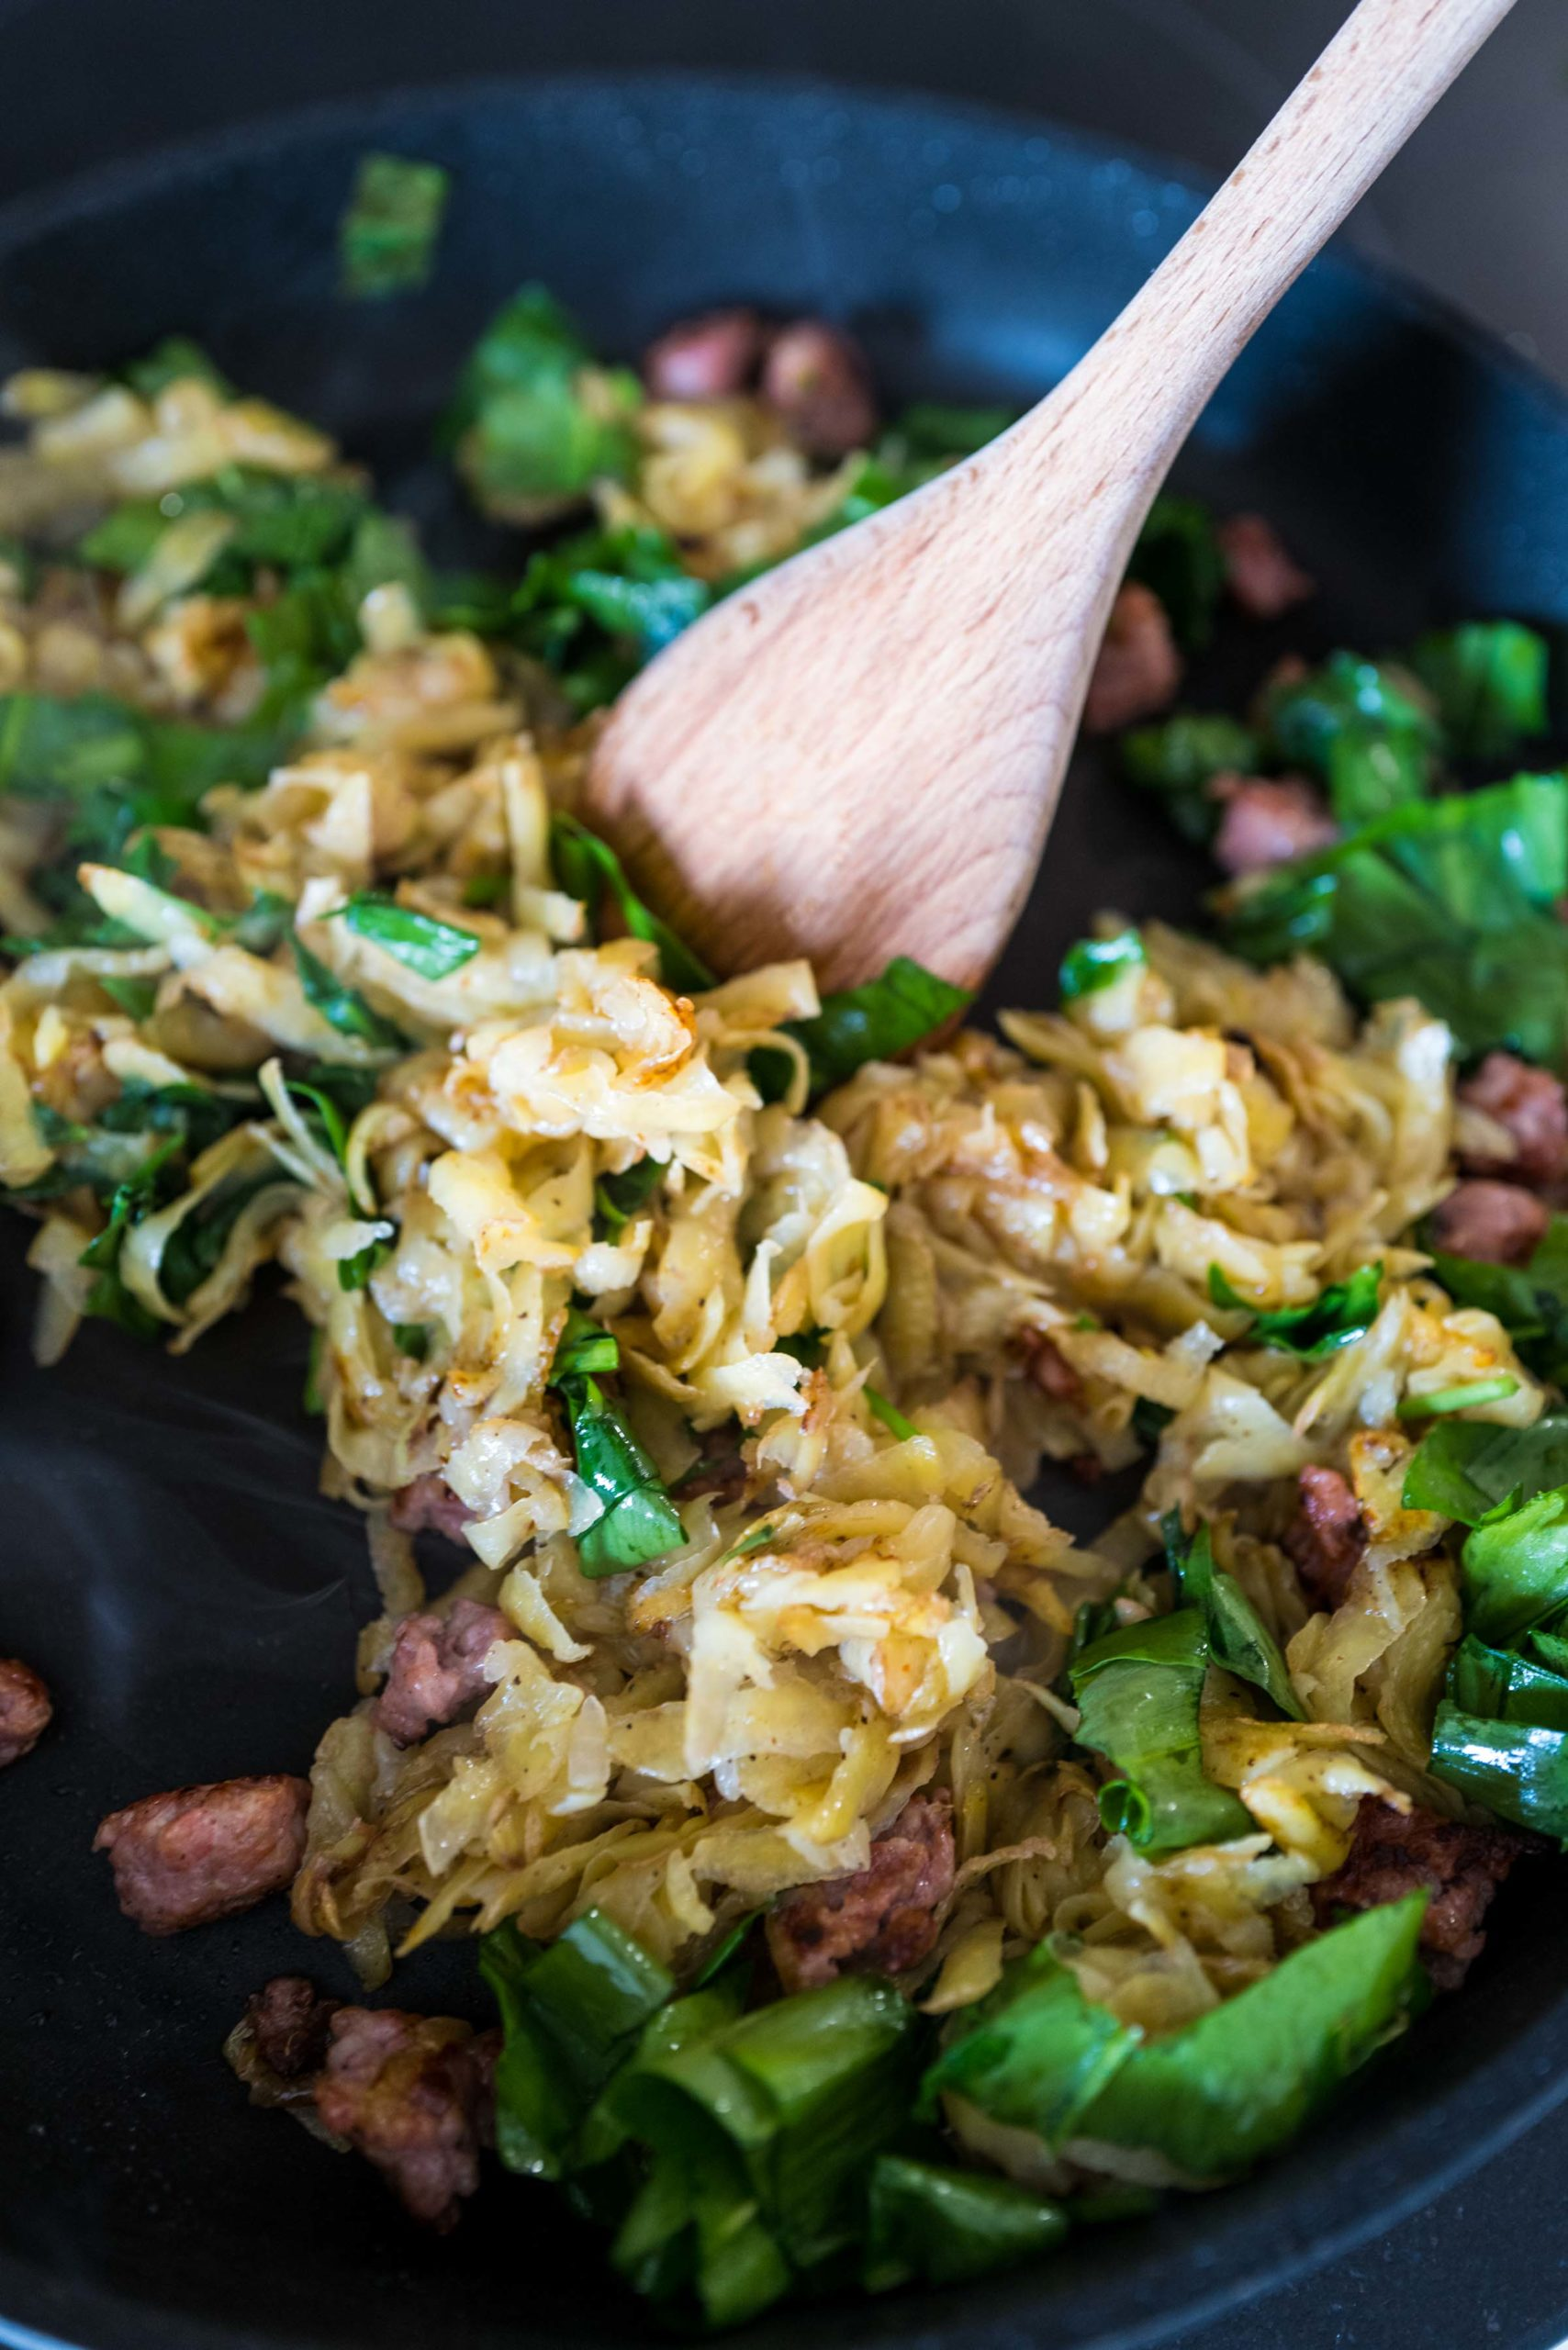 Make this easy home made hashbrowns with ramps, sausage, and eggs on top #recipe #ramps #breakfast